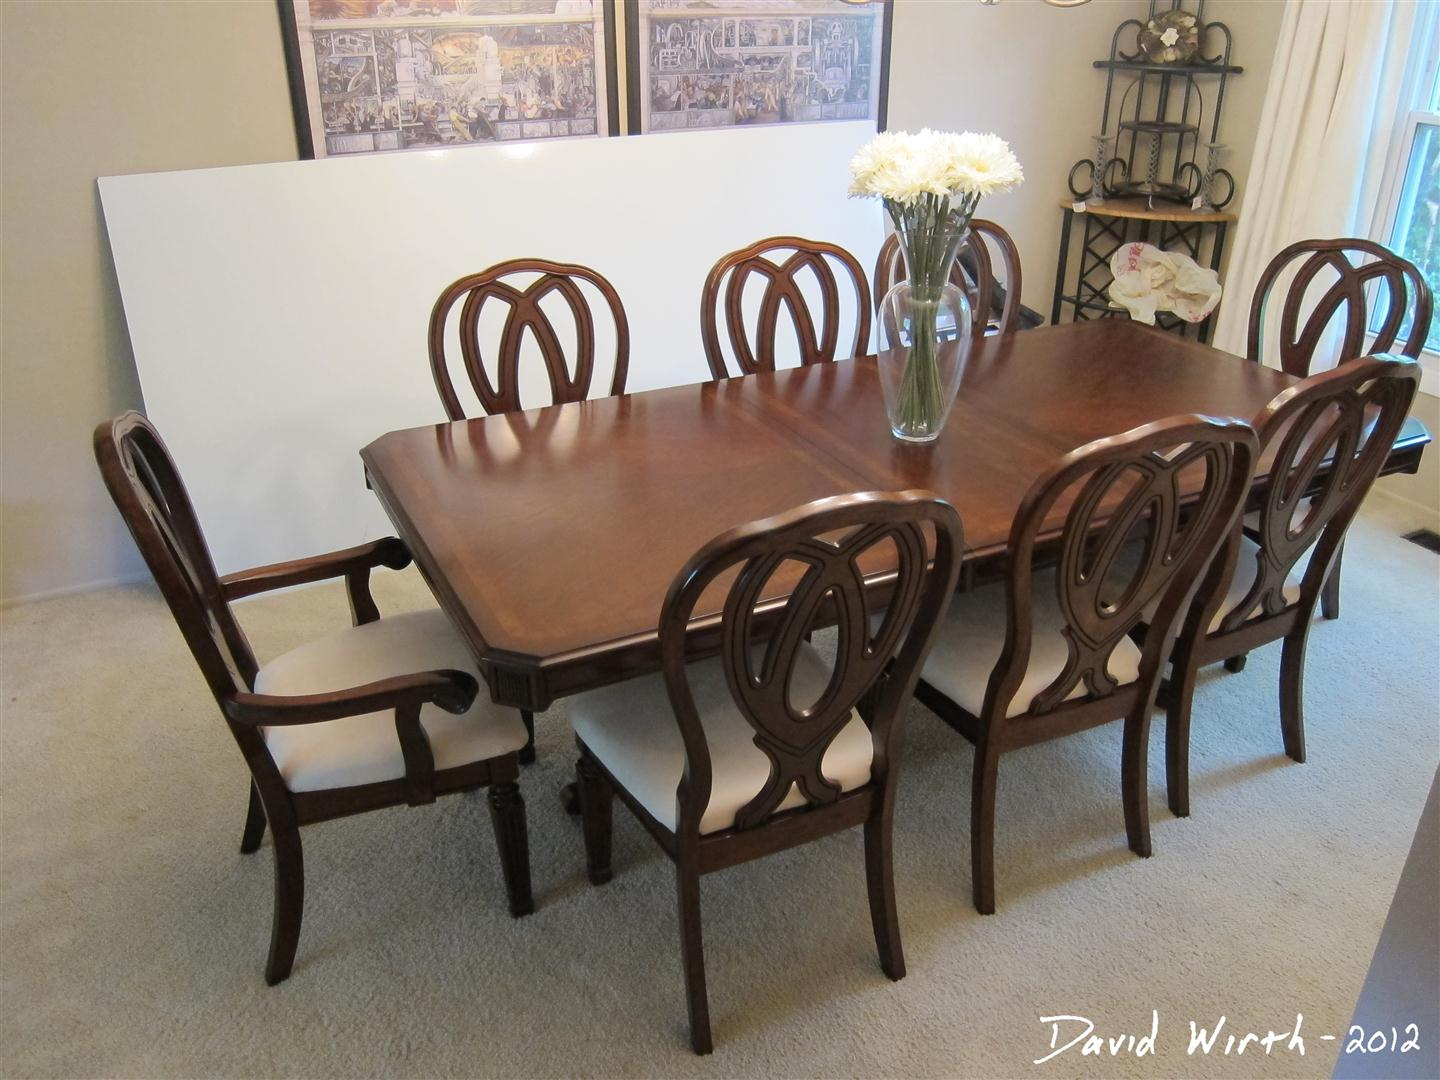 dining room table and chairs set, recovered chairs fabric, wood table ...